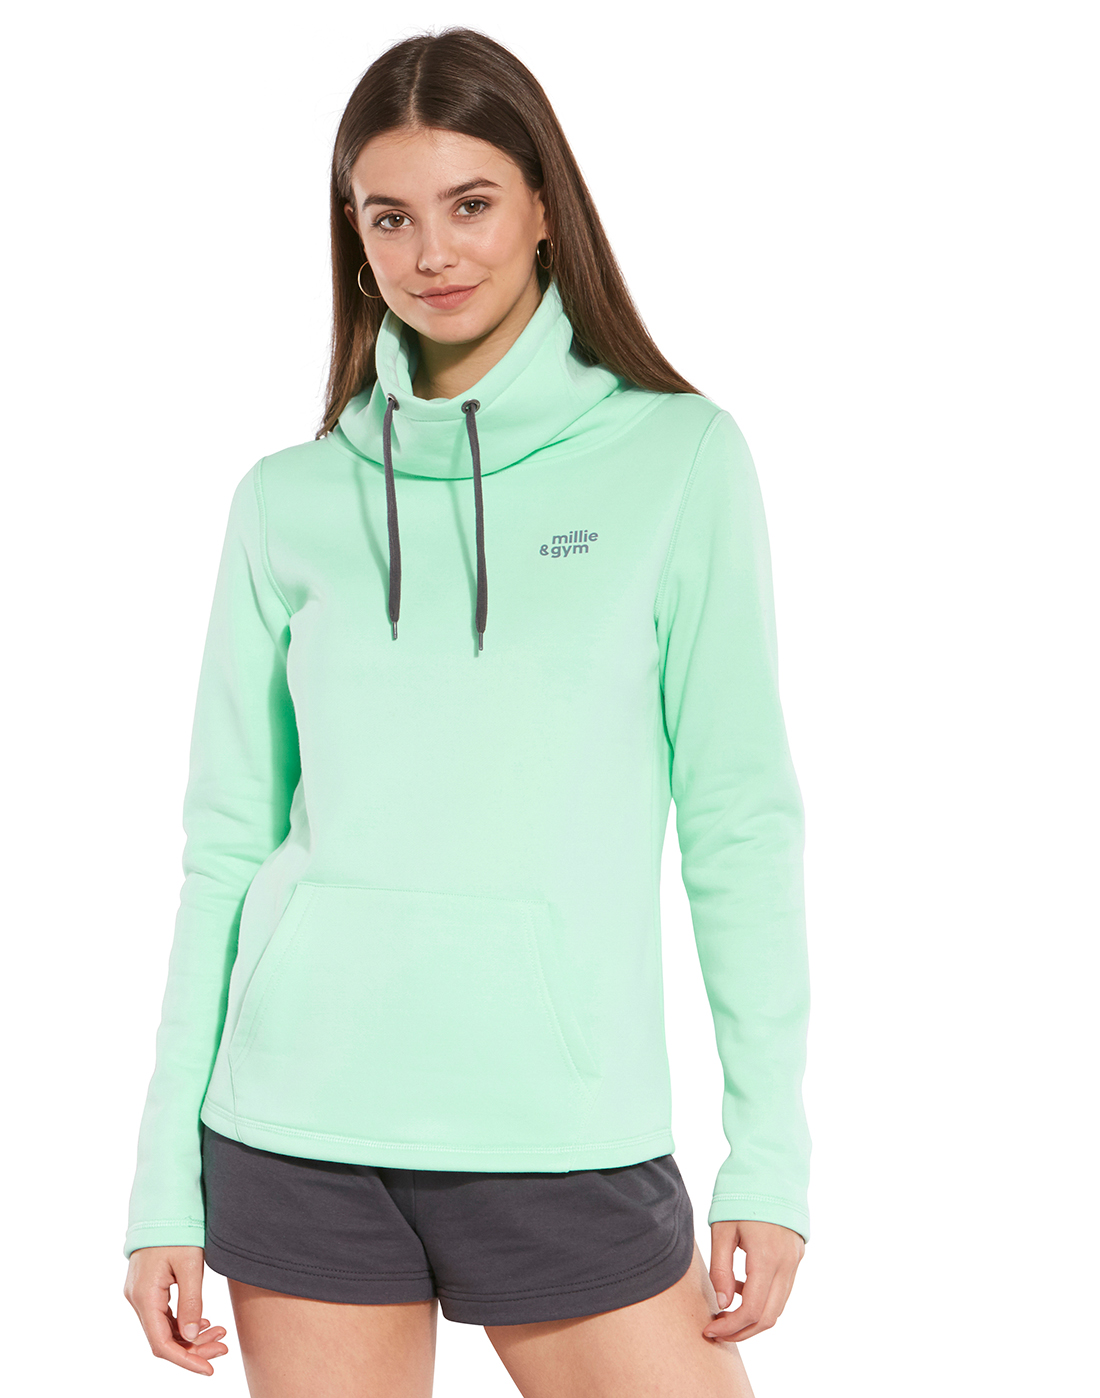 5e720fdd2 Mint Green Millie & Gym Hoodie | Life Style Sports